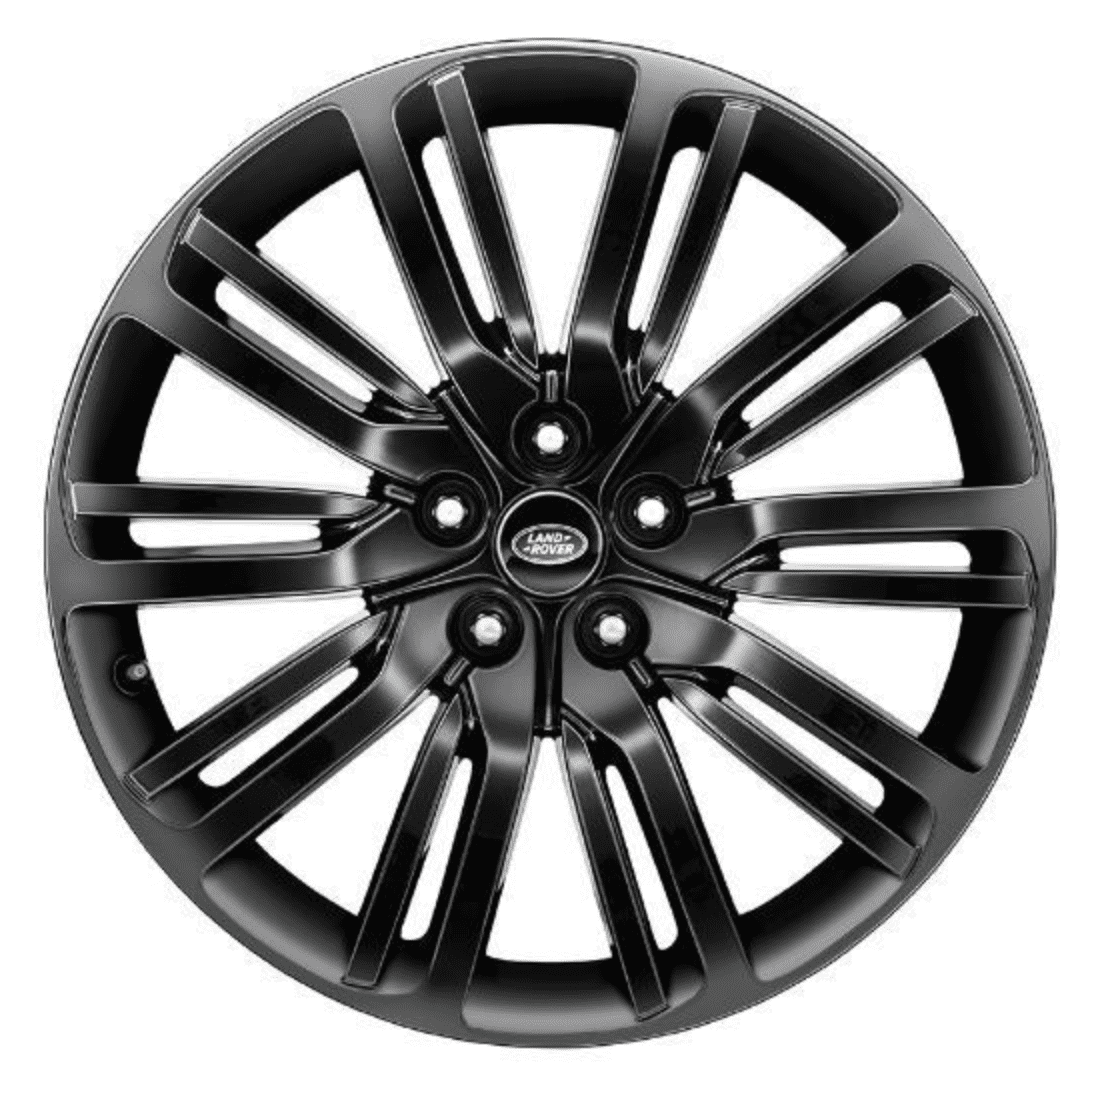 """Genuine Land Rover Discovery 5 Style 1012 21"""" inch 10 Spoke Alloy Wheels with Gloss Black Finish LR0181585"""